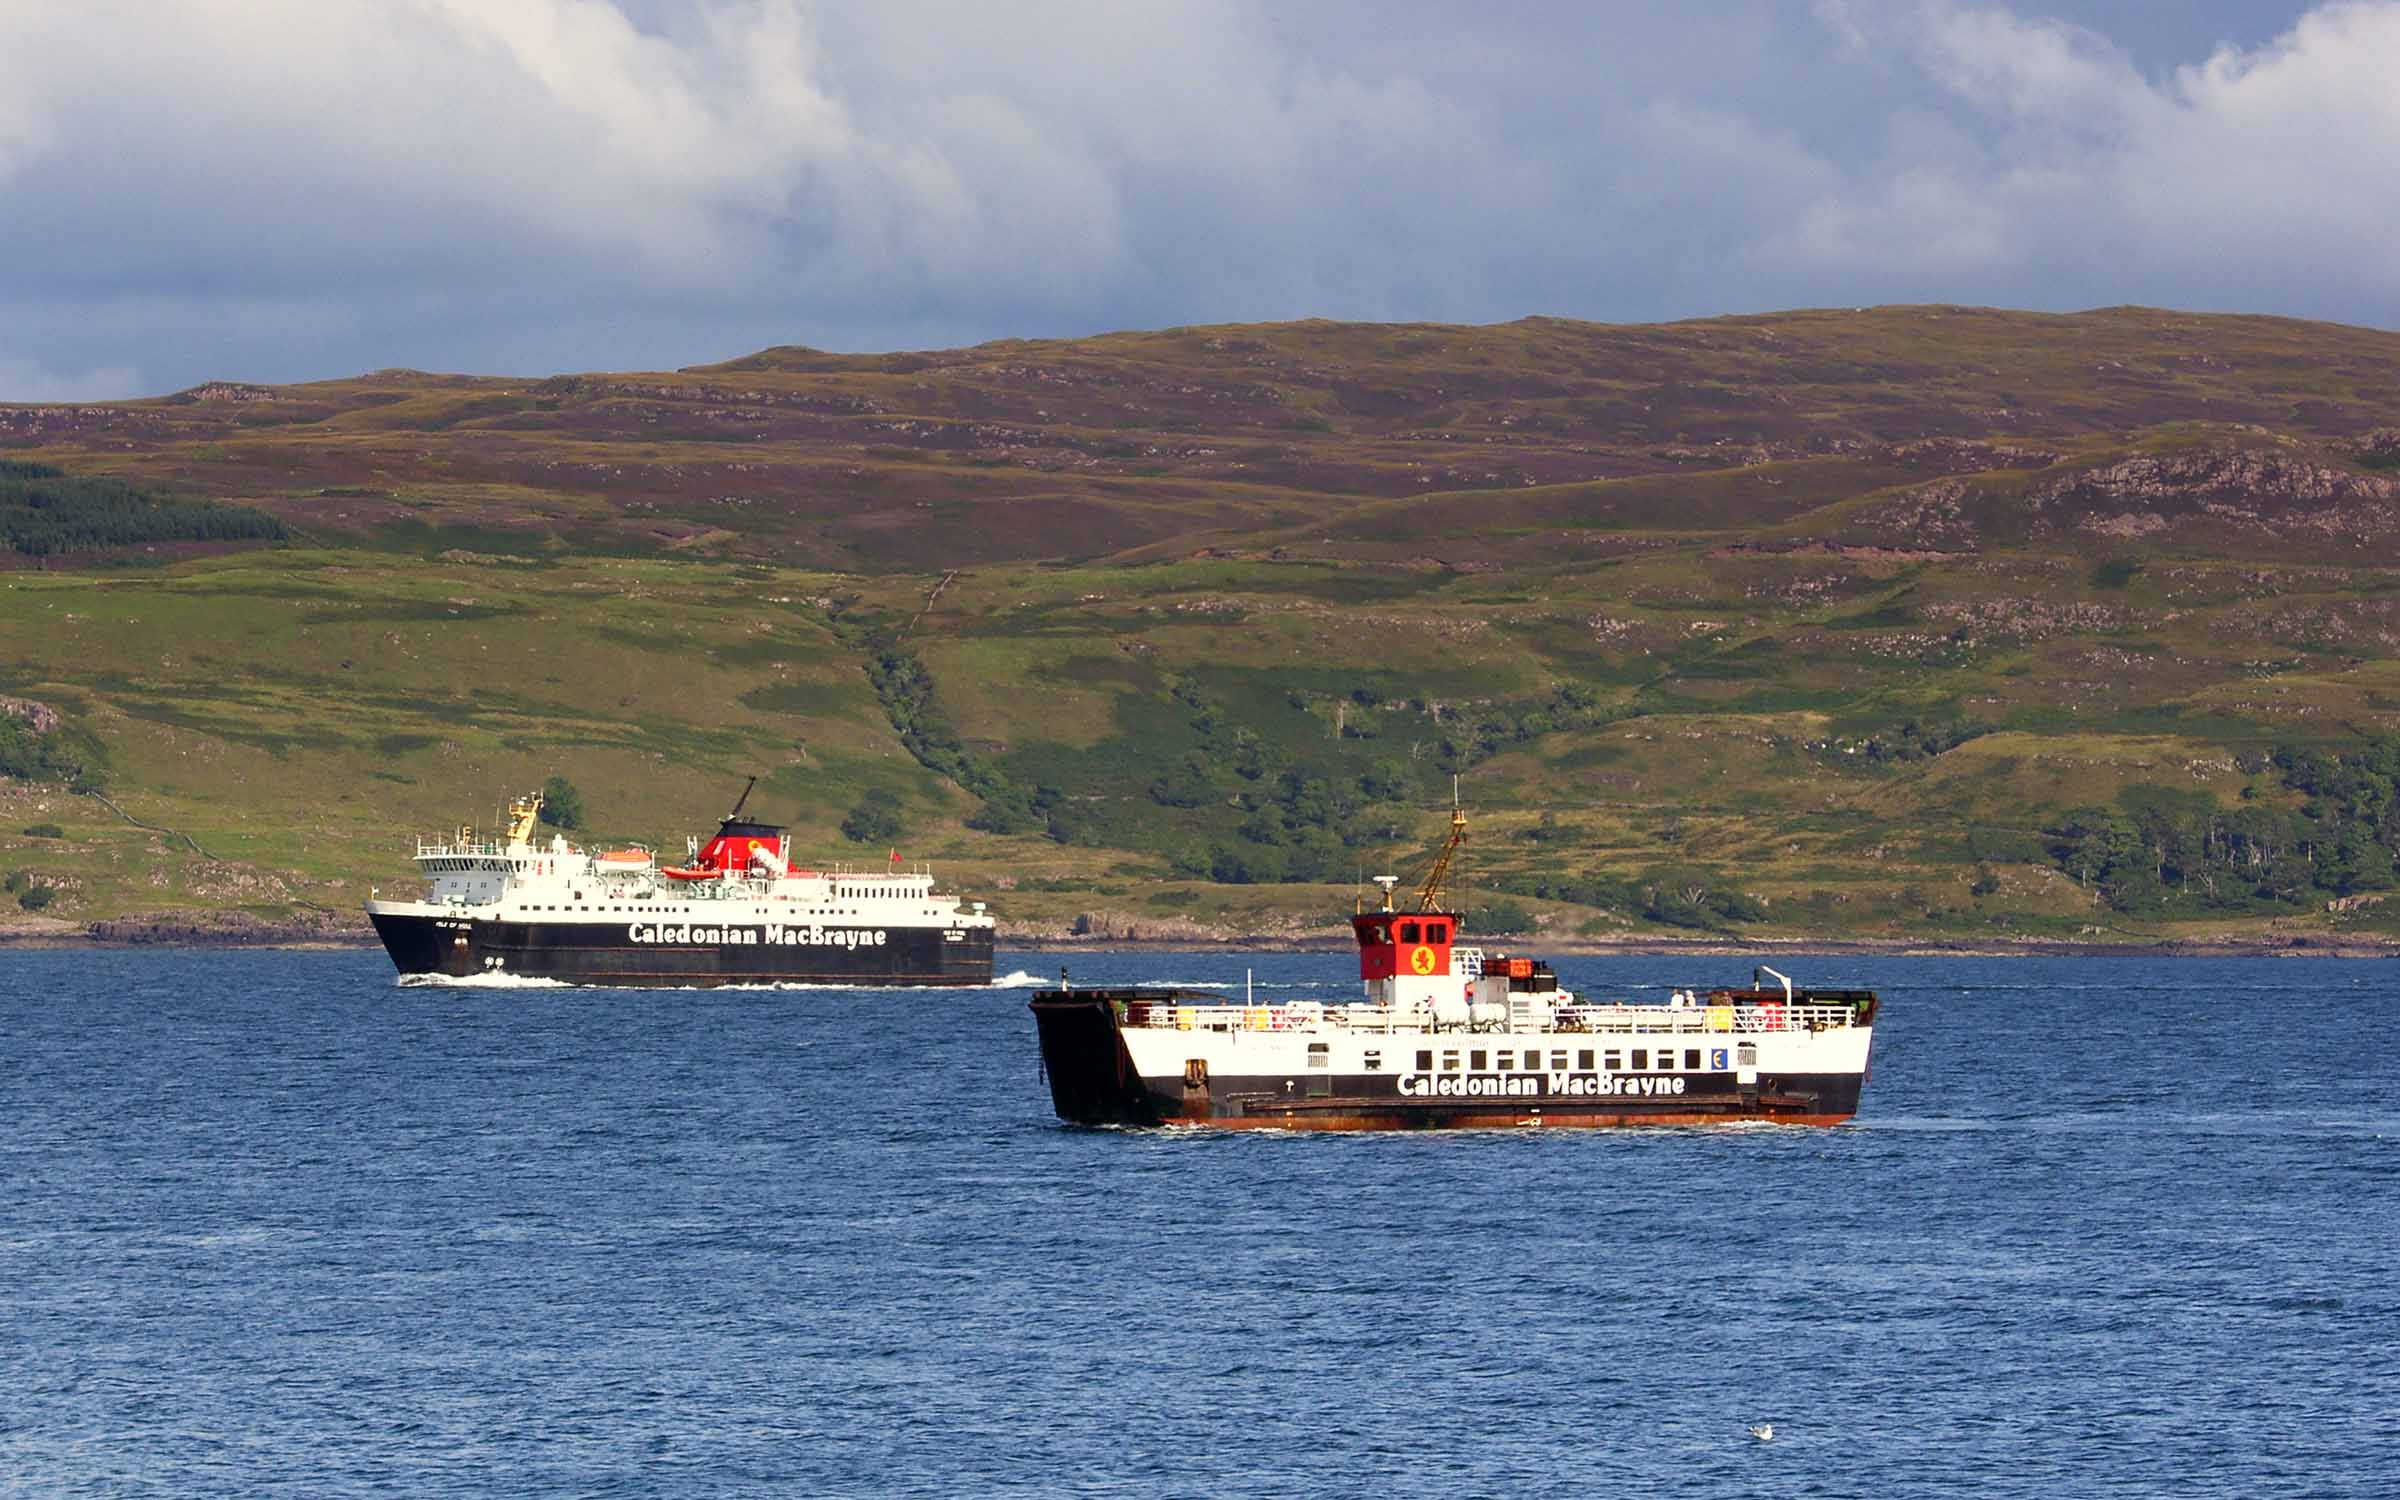 Loch Linnhe and Isle of Mull off Tobermory (Ships of CalMac)